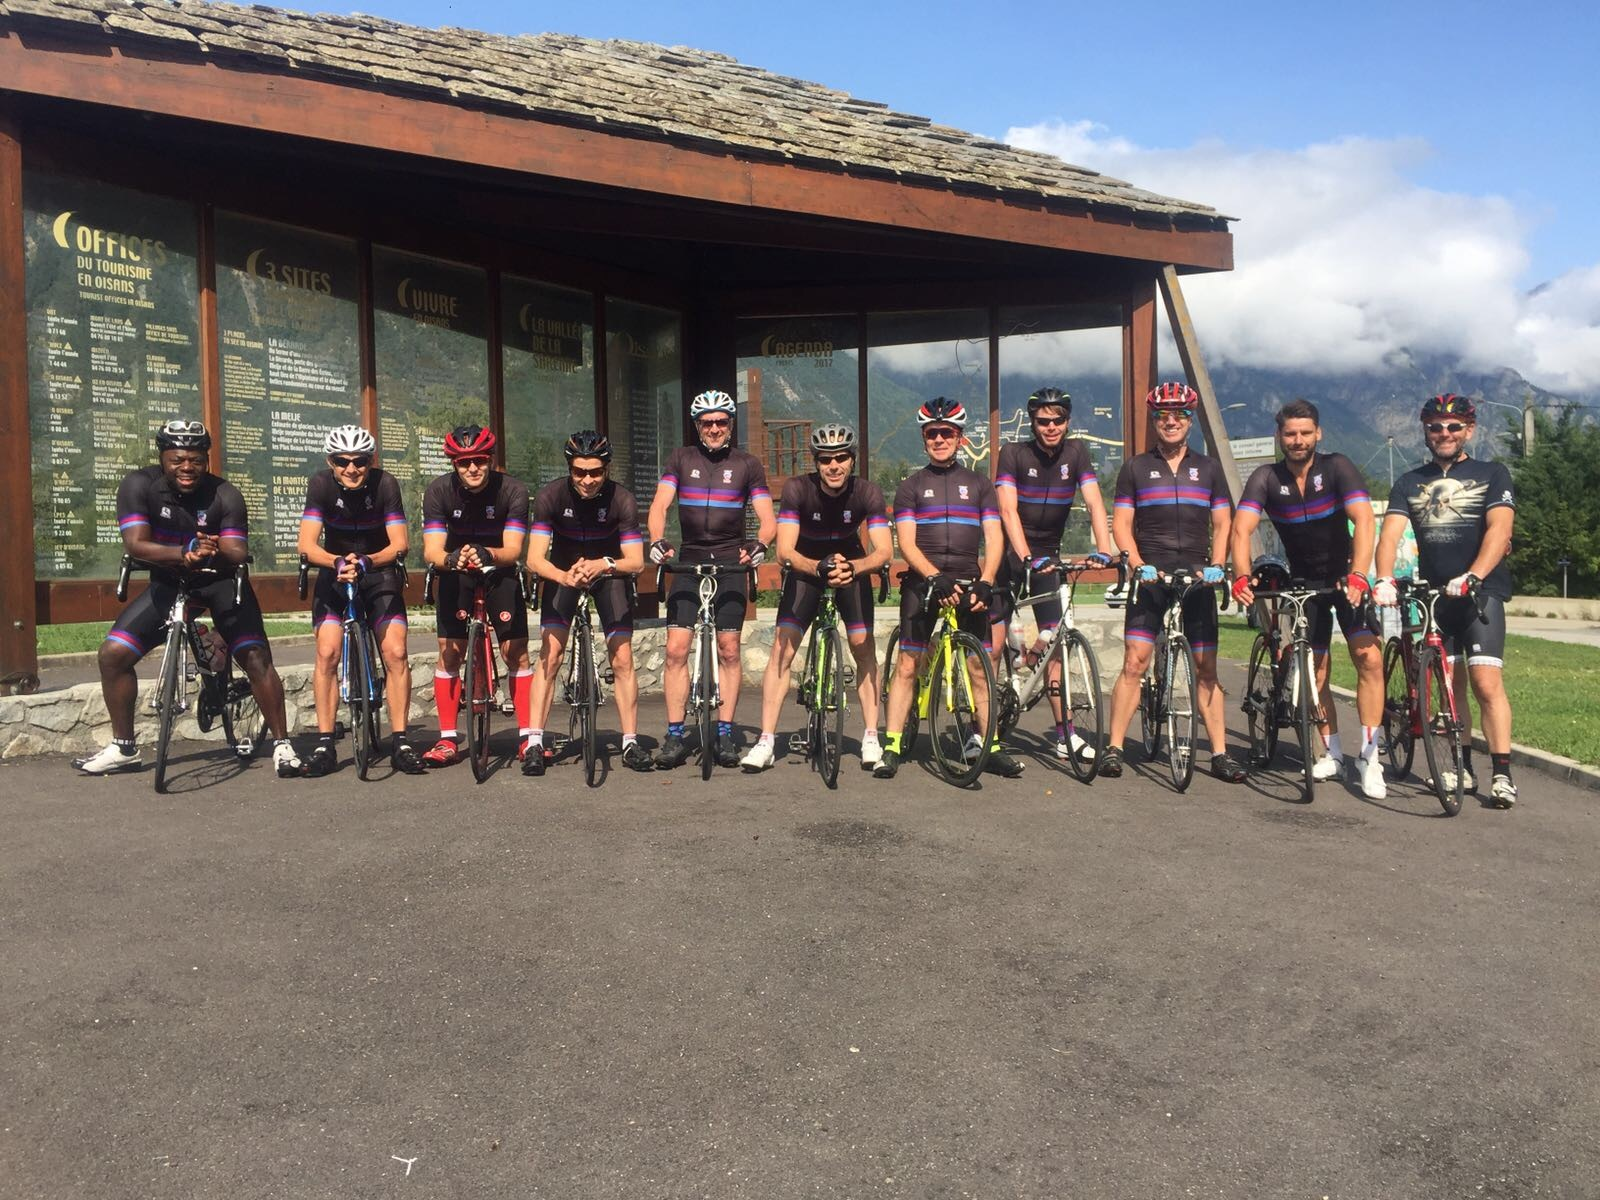 Back from great cycling trip to Alpe d' Huez and Galibier